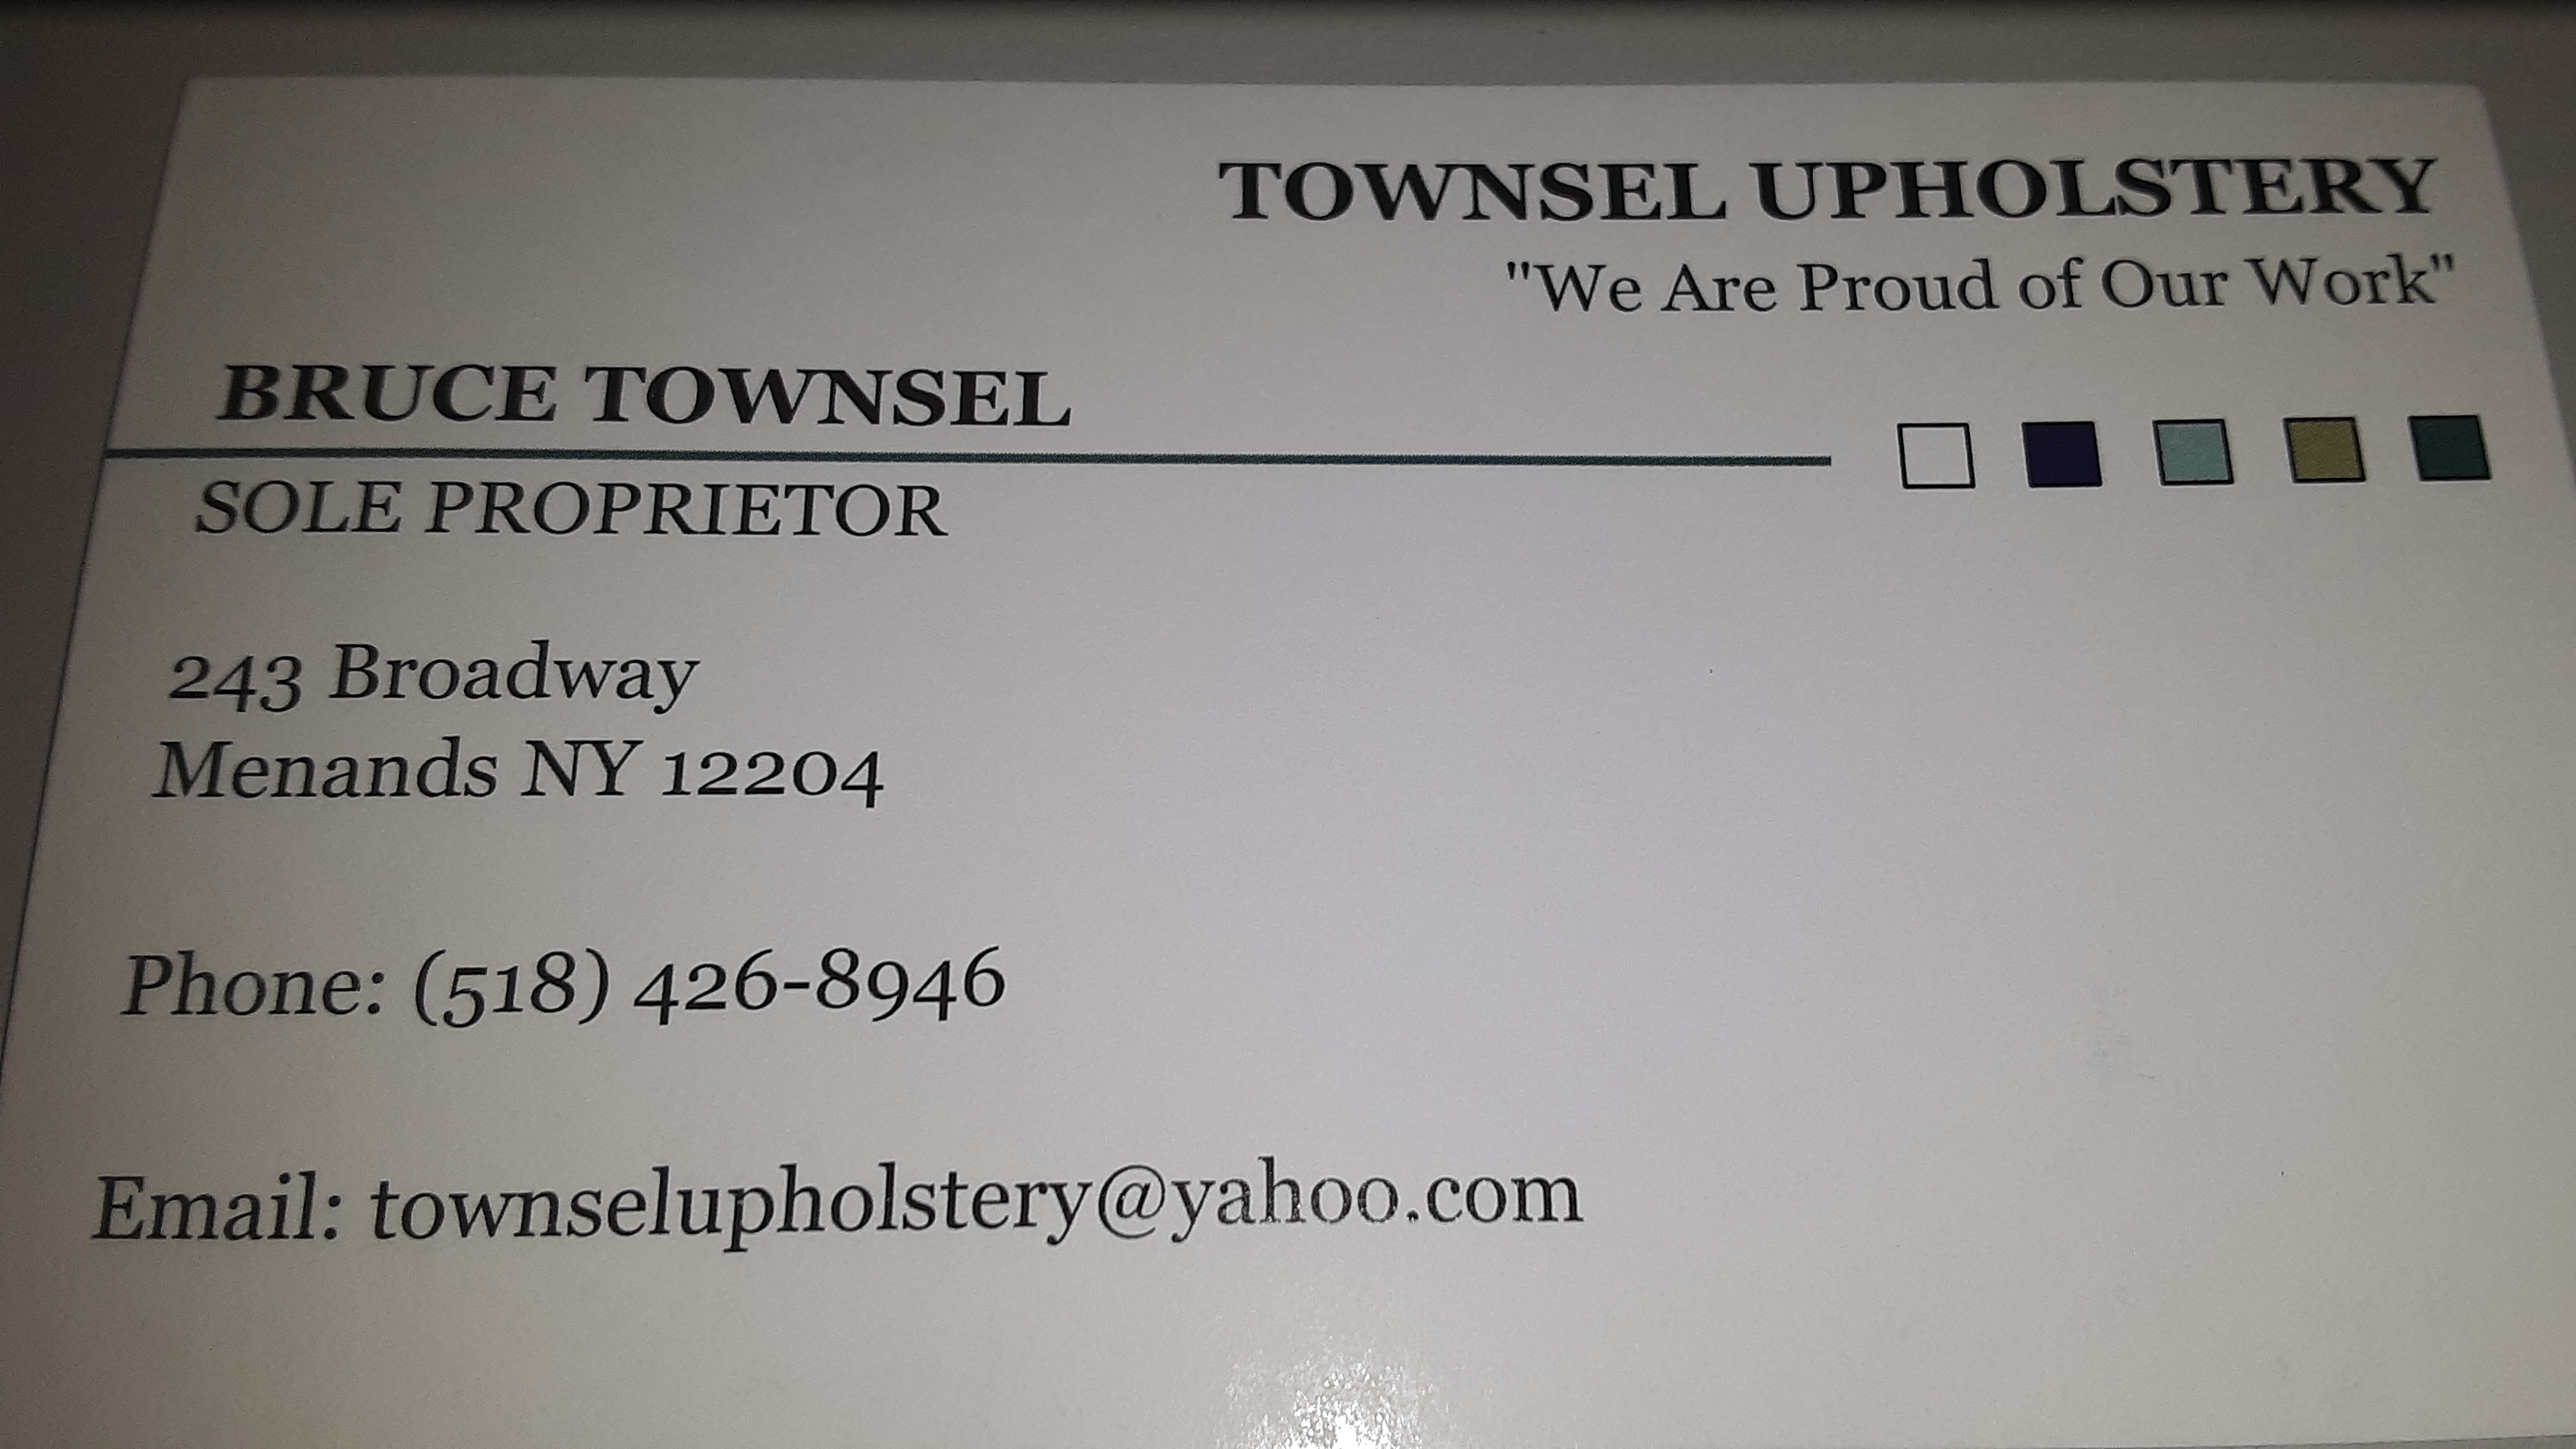 Townsel Upholstery